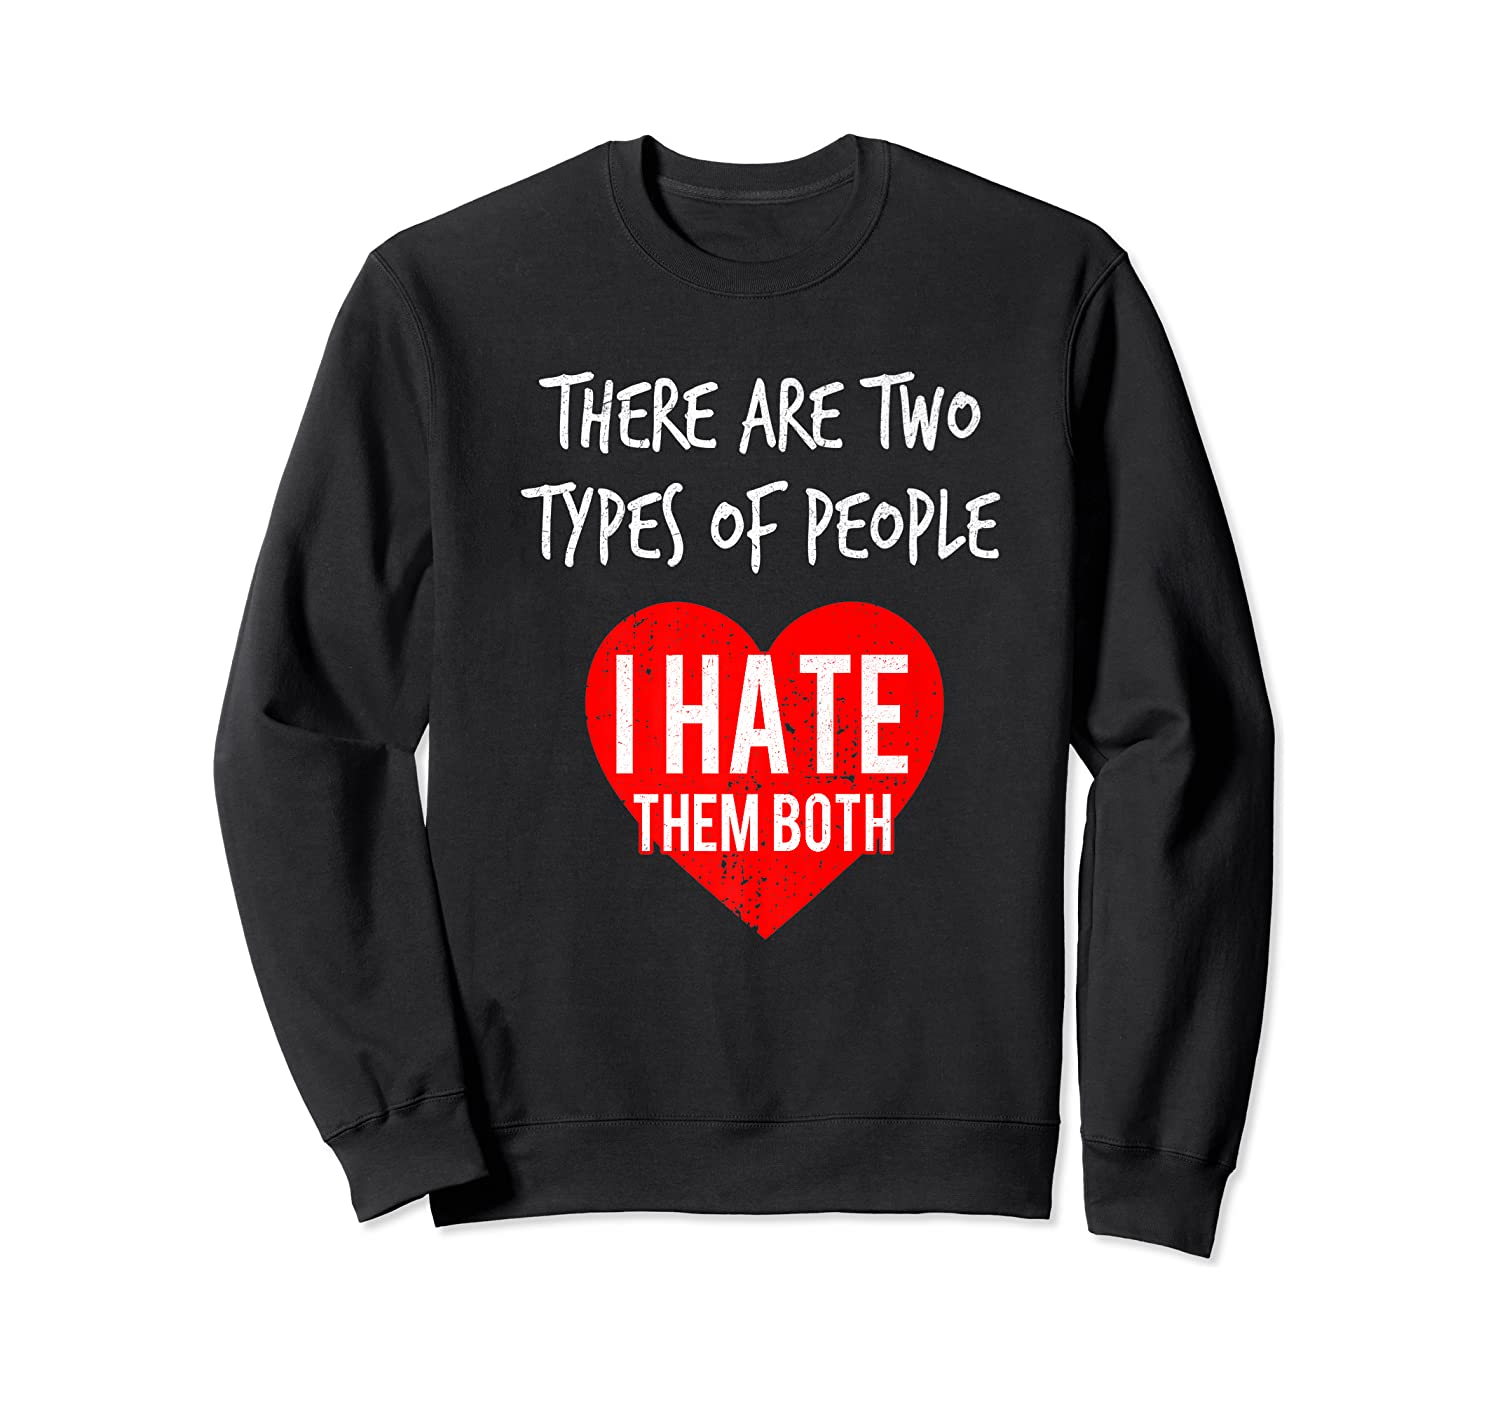 Two Types Of People I Hate Both Sarcastic Funny Ironic Gift Shirts Crewneck Sweater